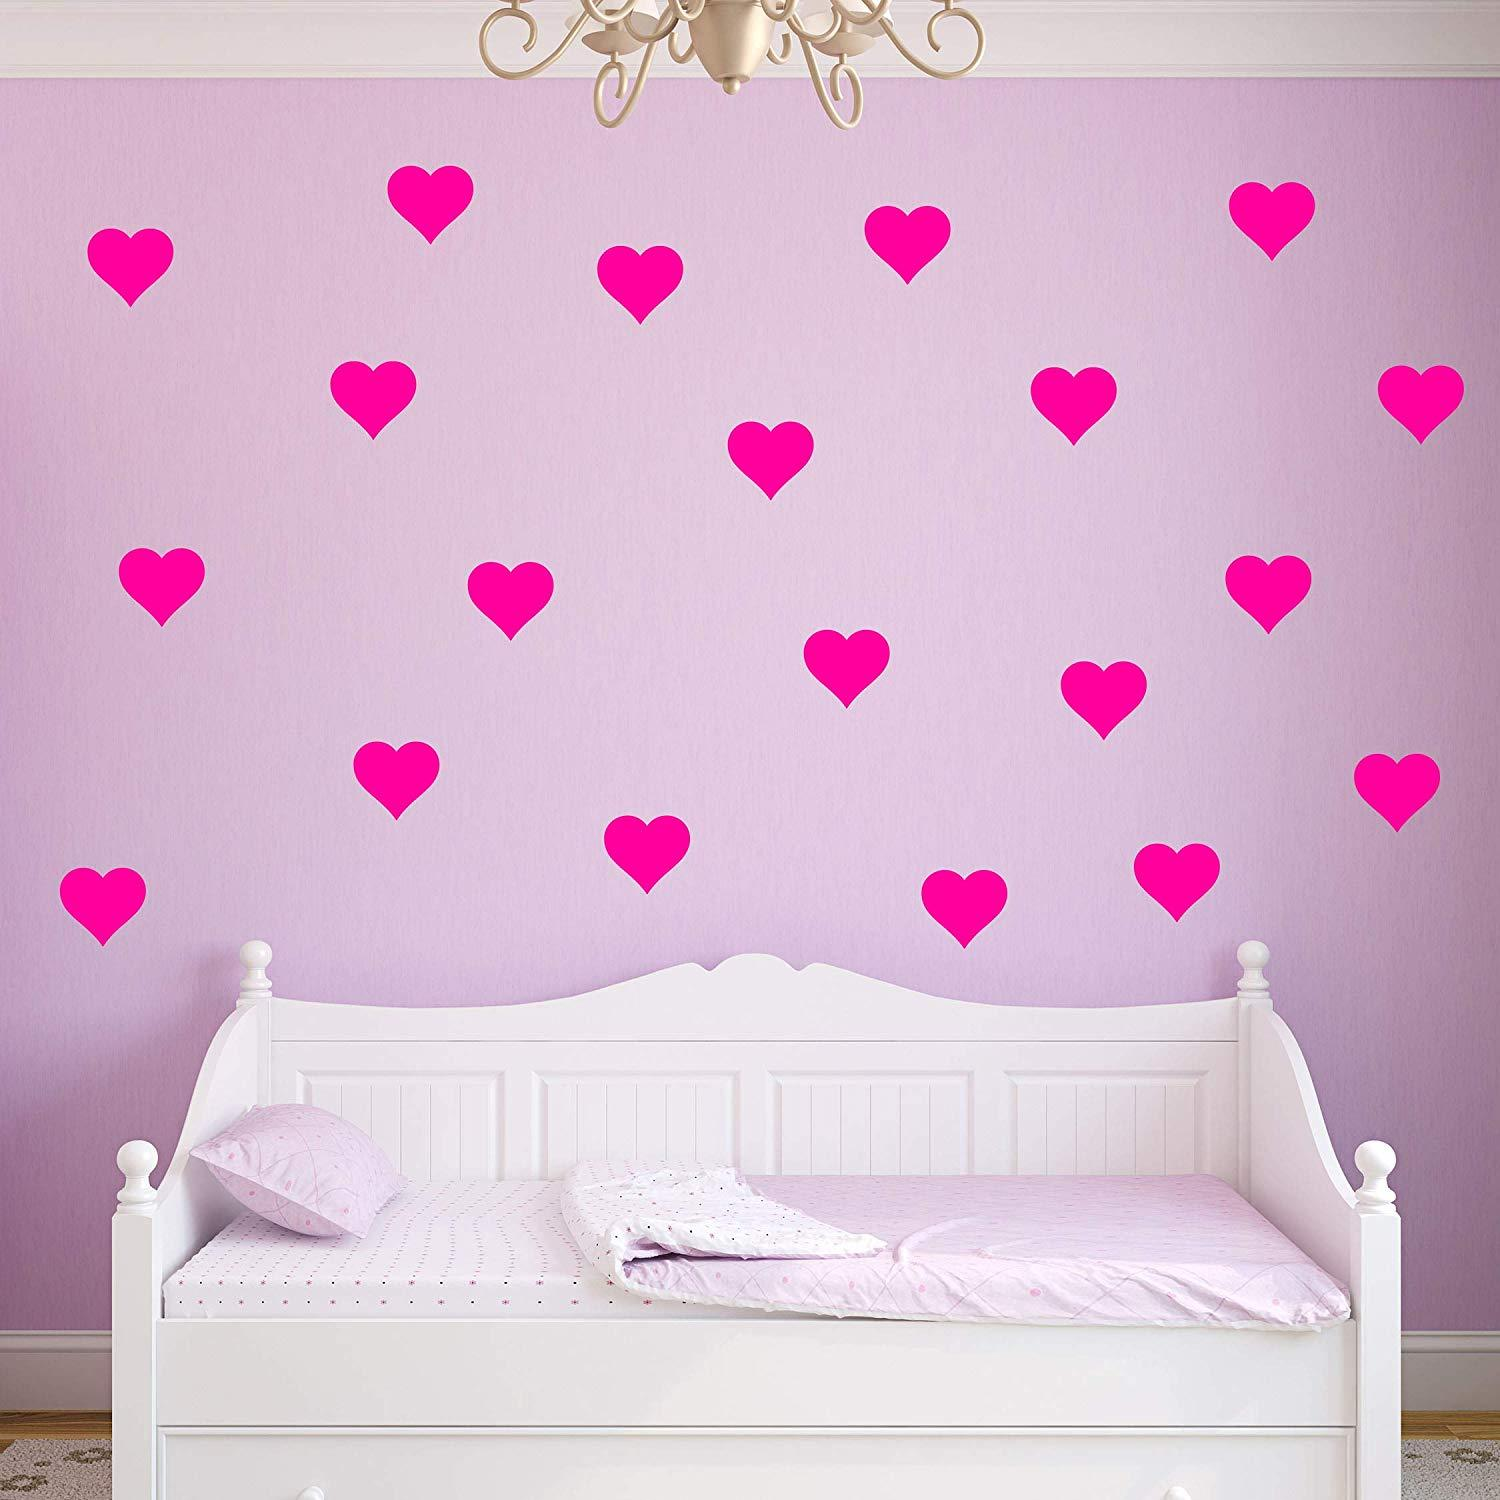 VWAQ Hearts Decals for Wall - Pack of 20 Vinyl Stickers - VWAQ Vinyl Wall Art Quotes and Prints